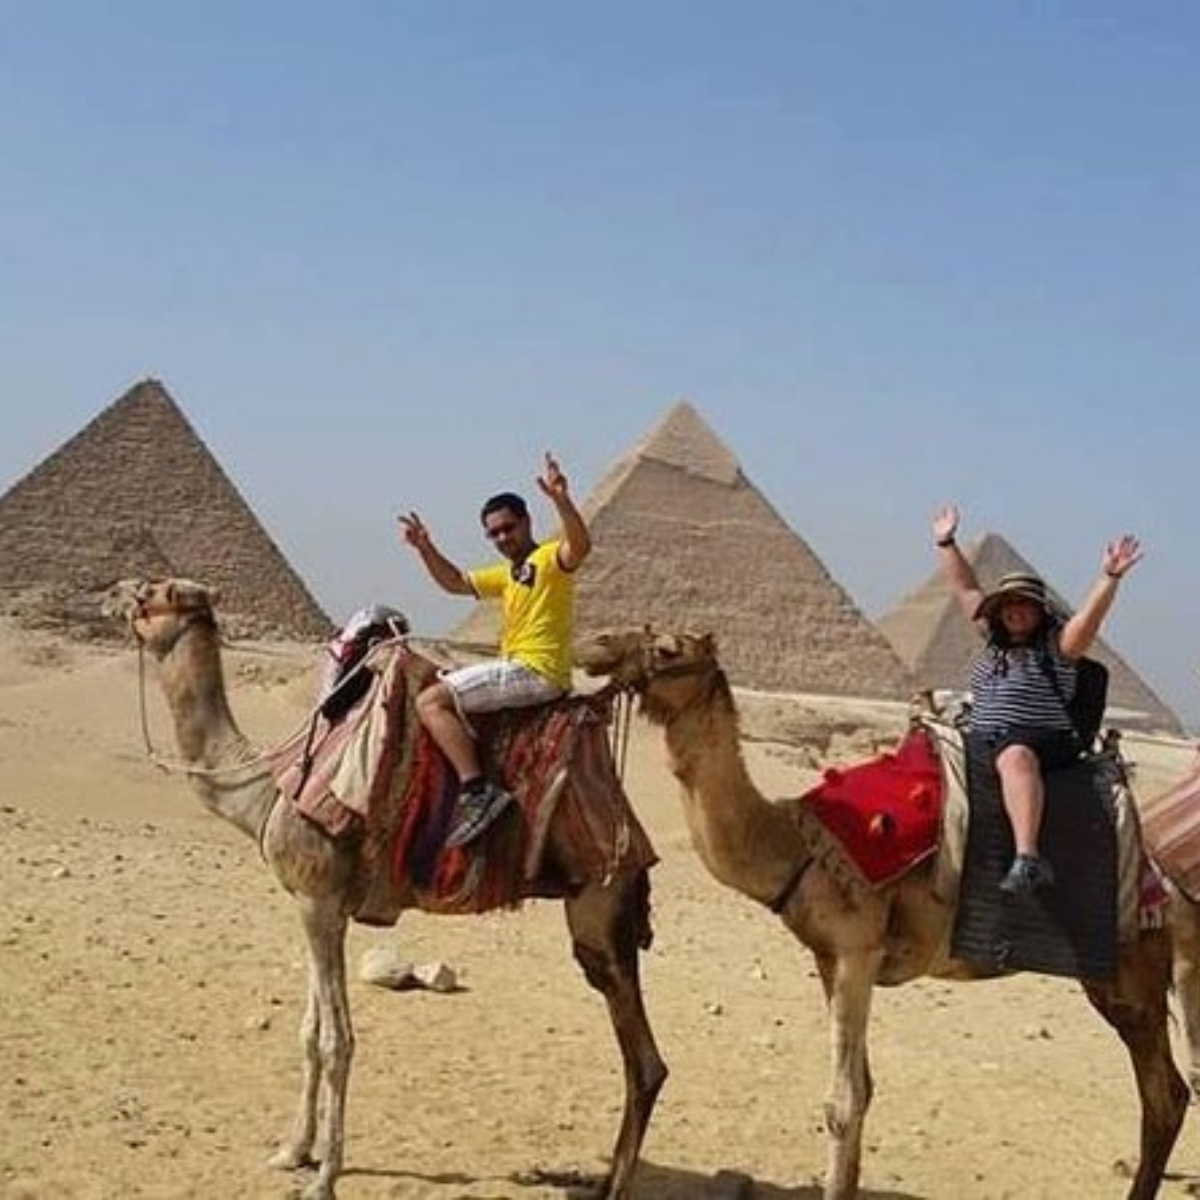 Sunset camel ride at the pyramids and pyramids sound and light show Images